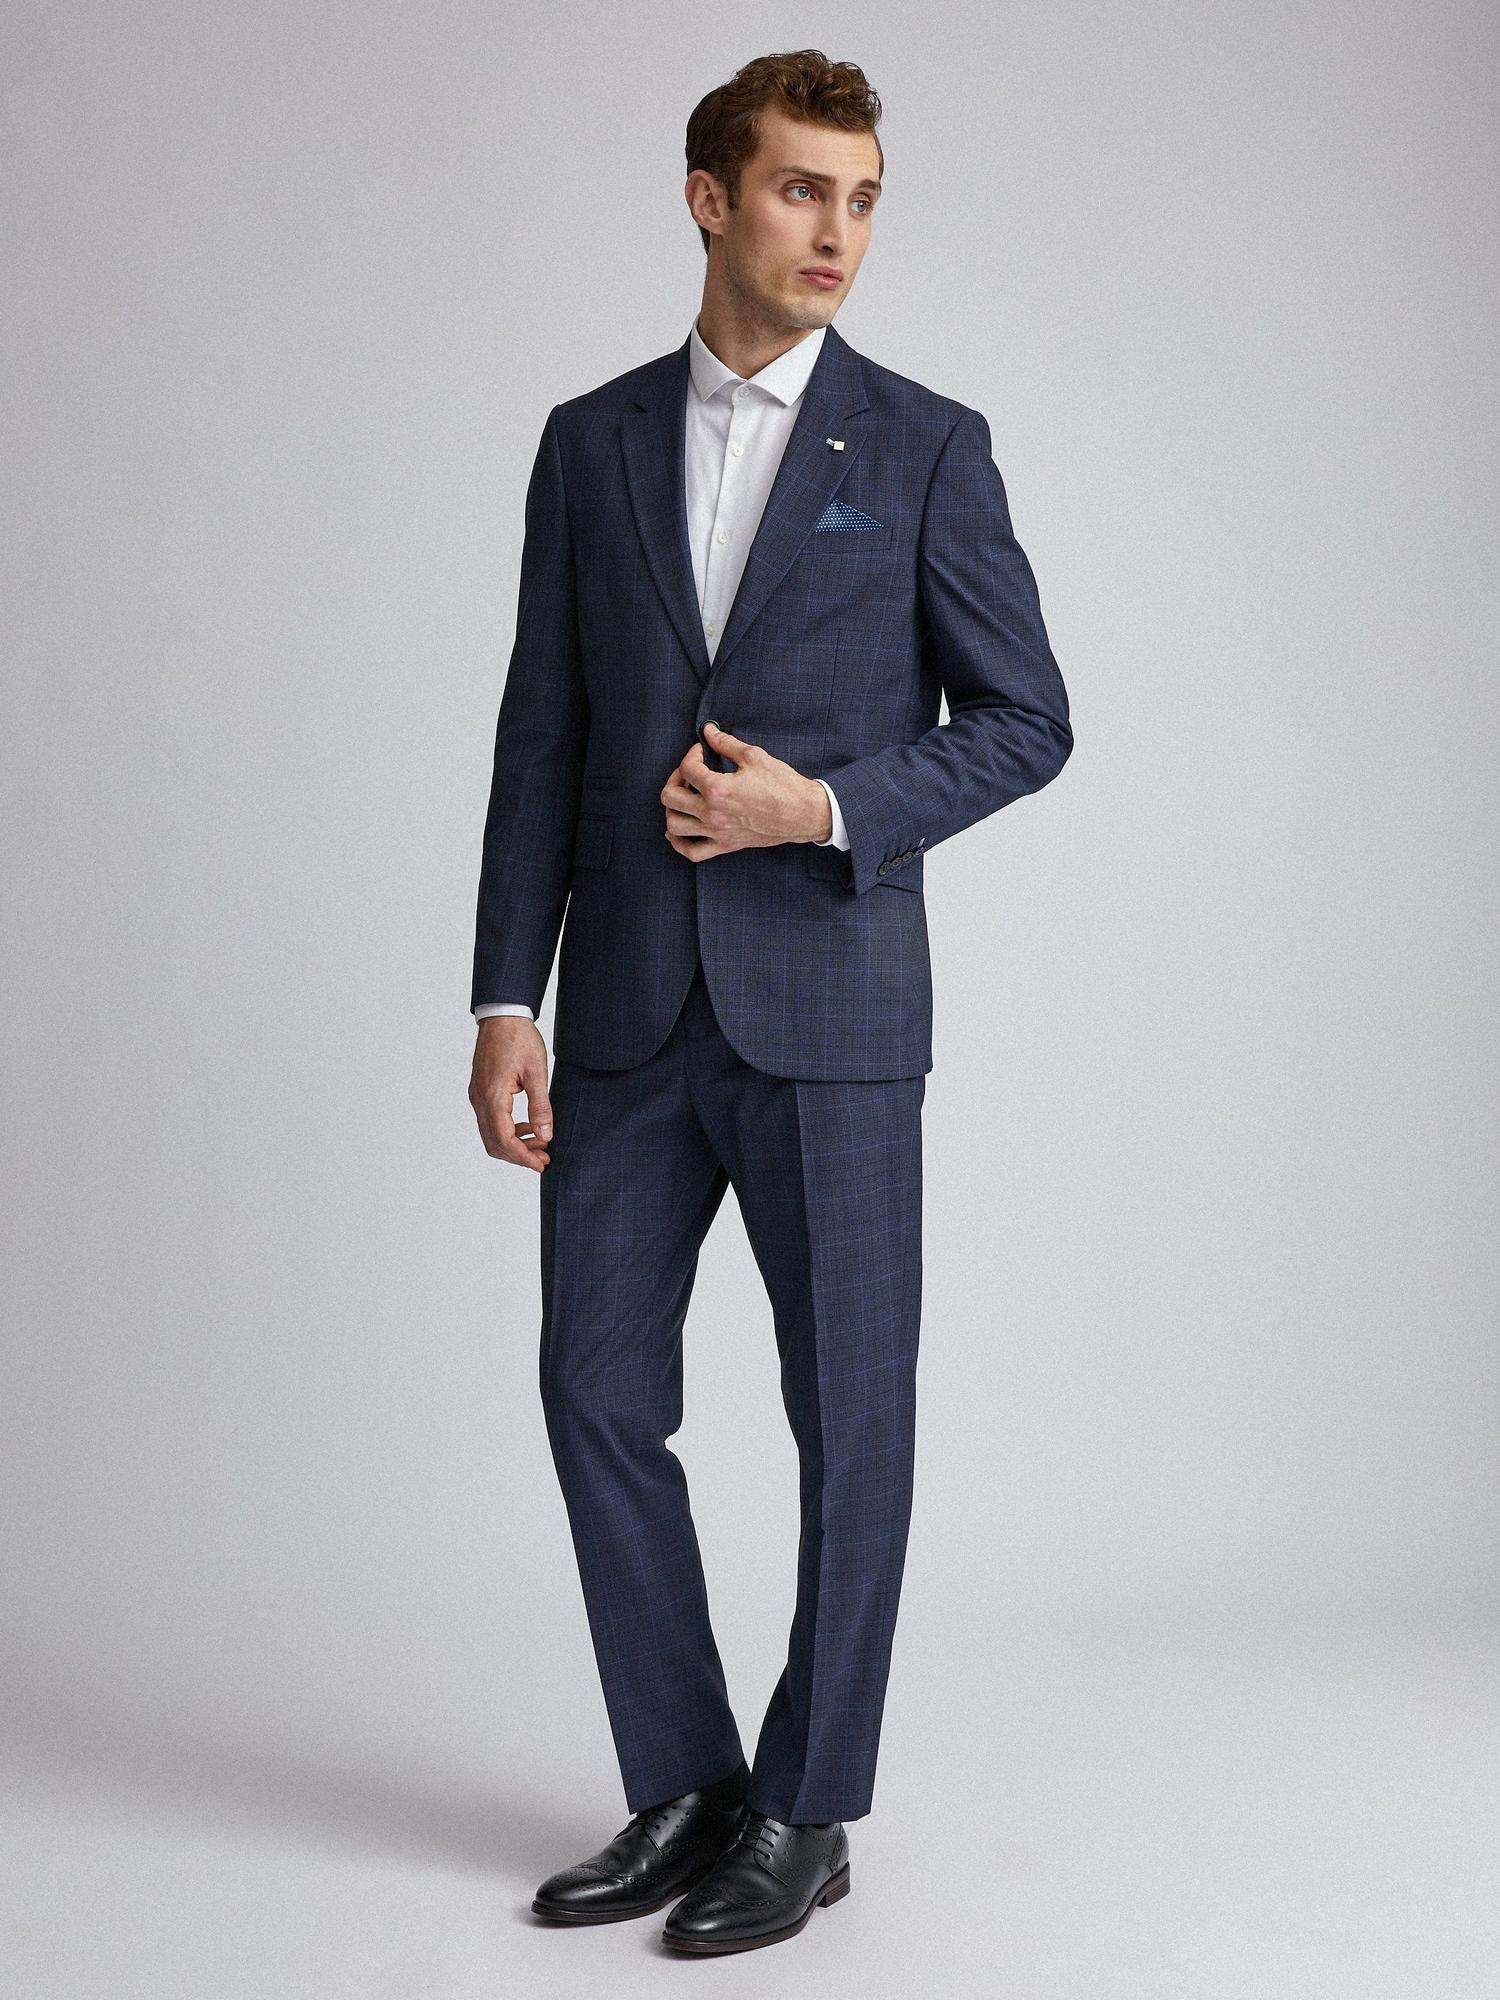 148 Navy Tonal Check Tailored Fit Suit Jacket image number 2